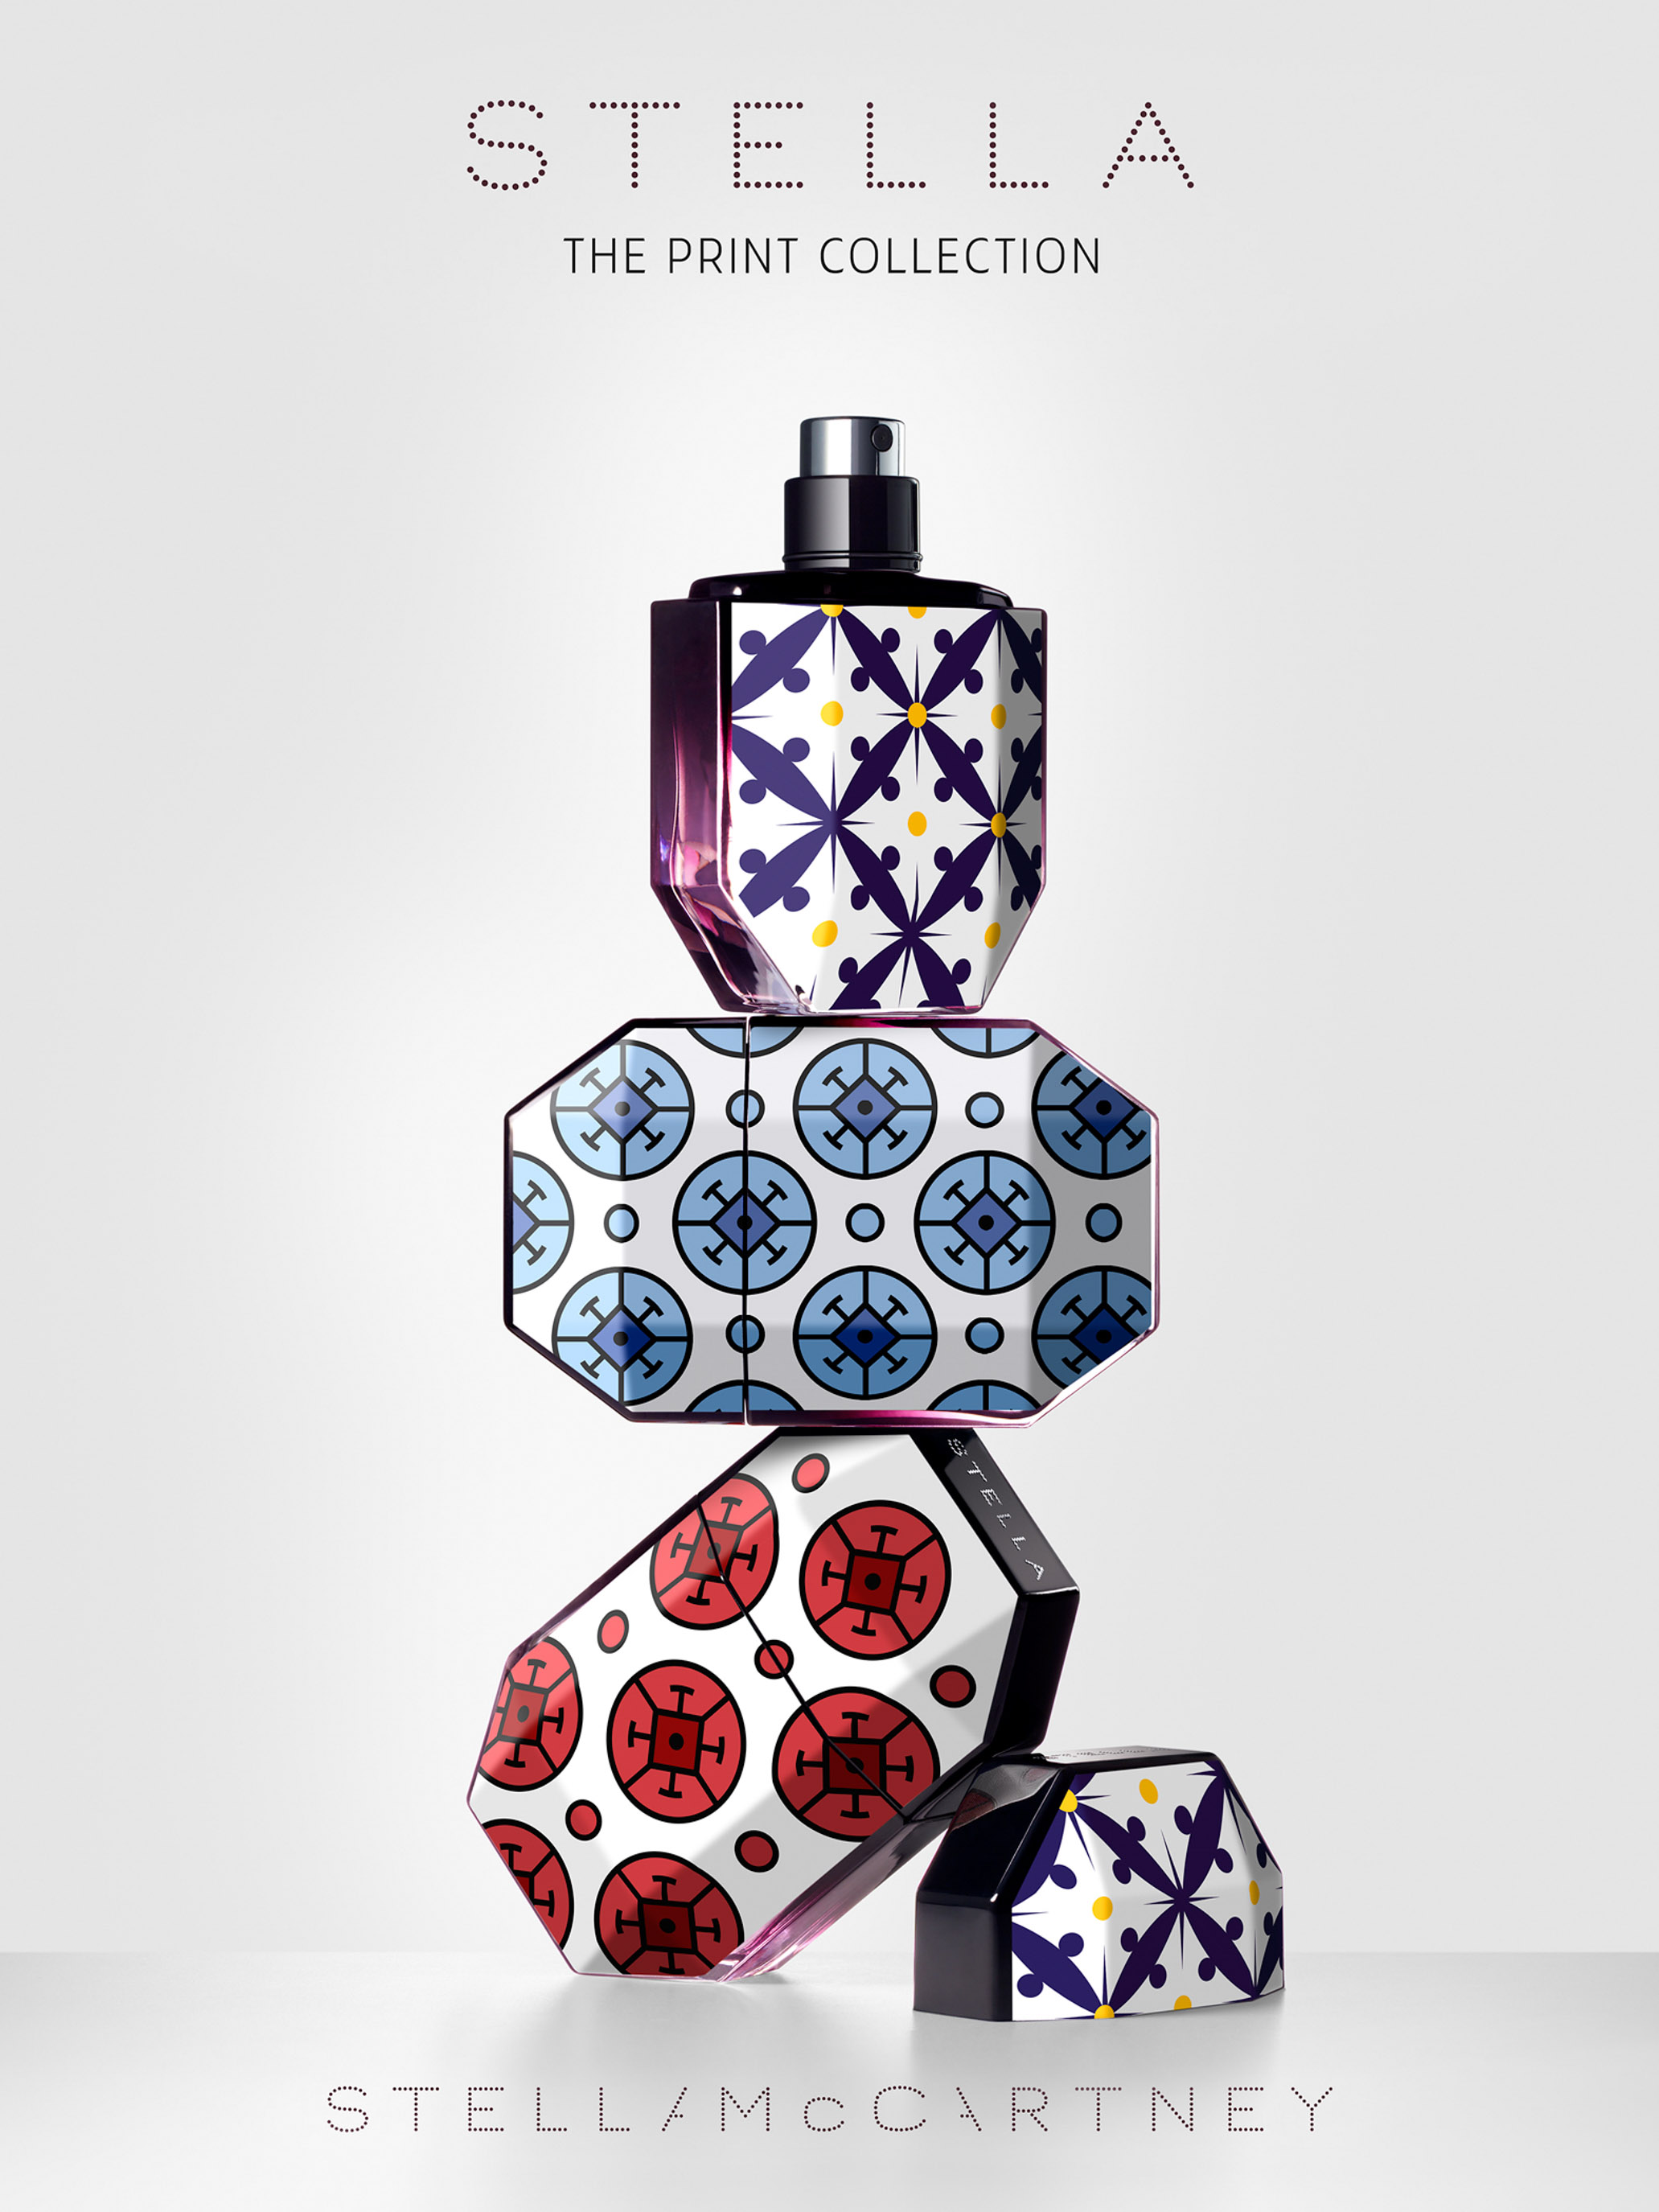 STAN Stella McCartney Print Collection Fragrance Still Life Advertising